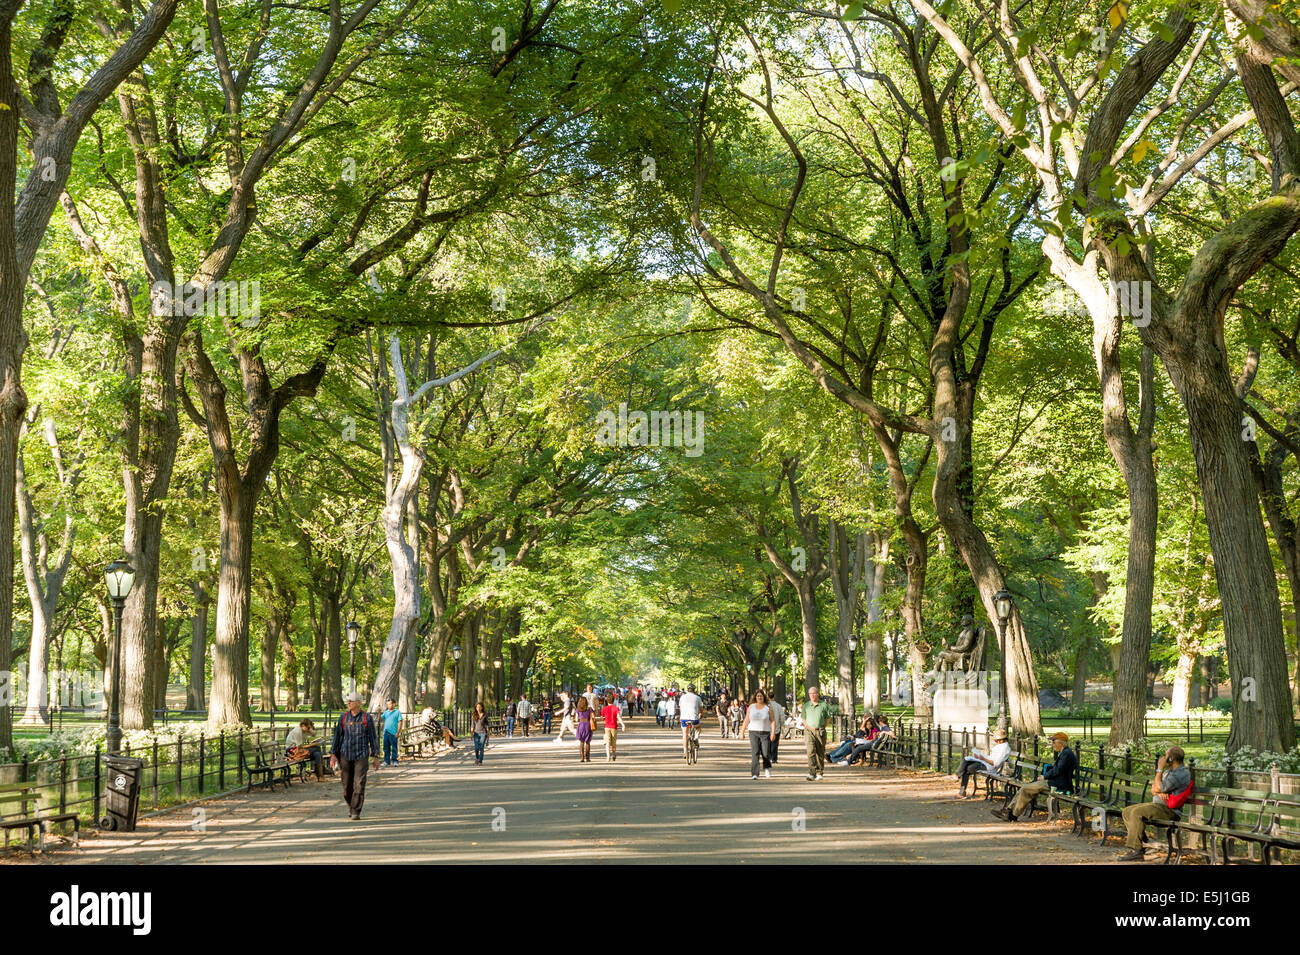 The Mall in Central Park, New York City, USA - Stock Image